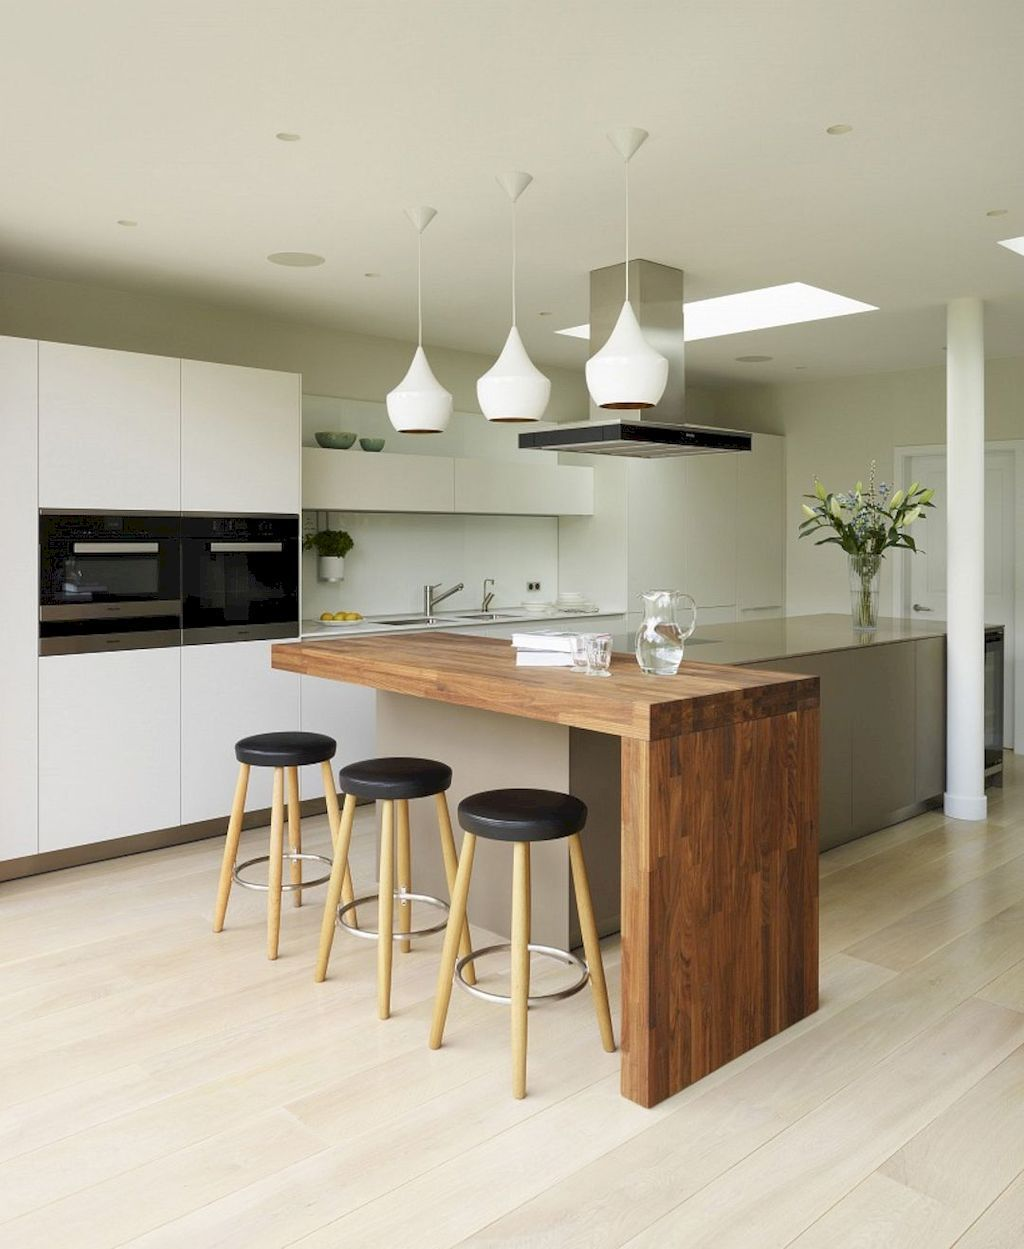 Best inspire small kitchen remodel ideas kitchens murphy bed